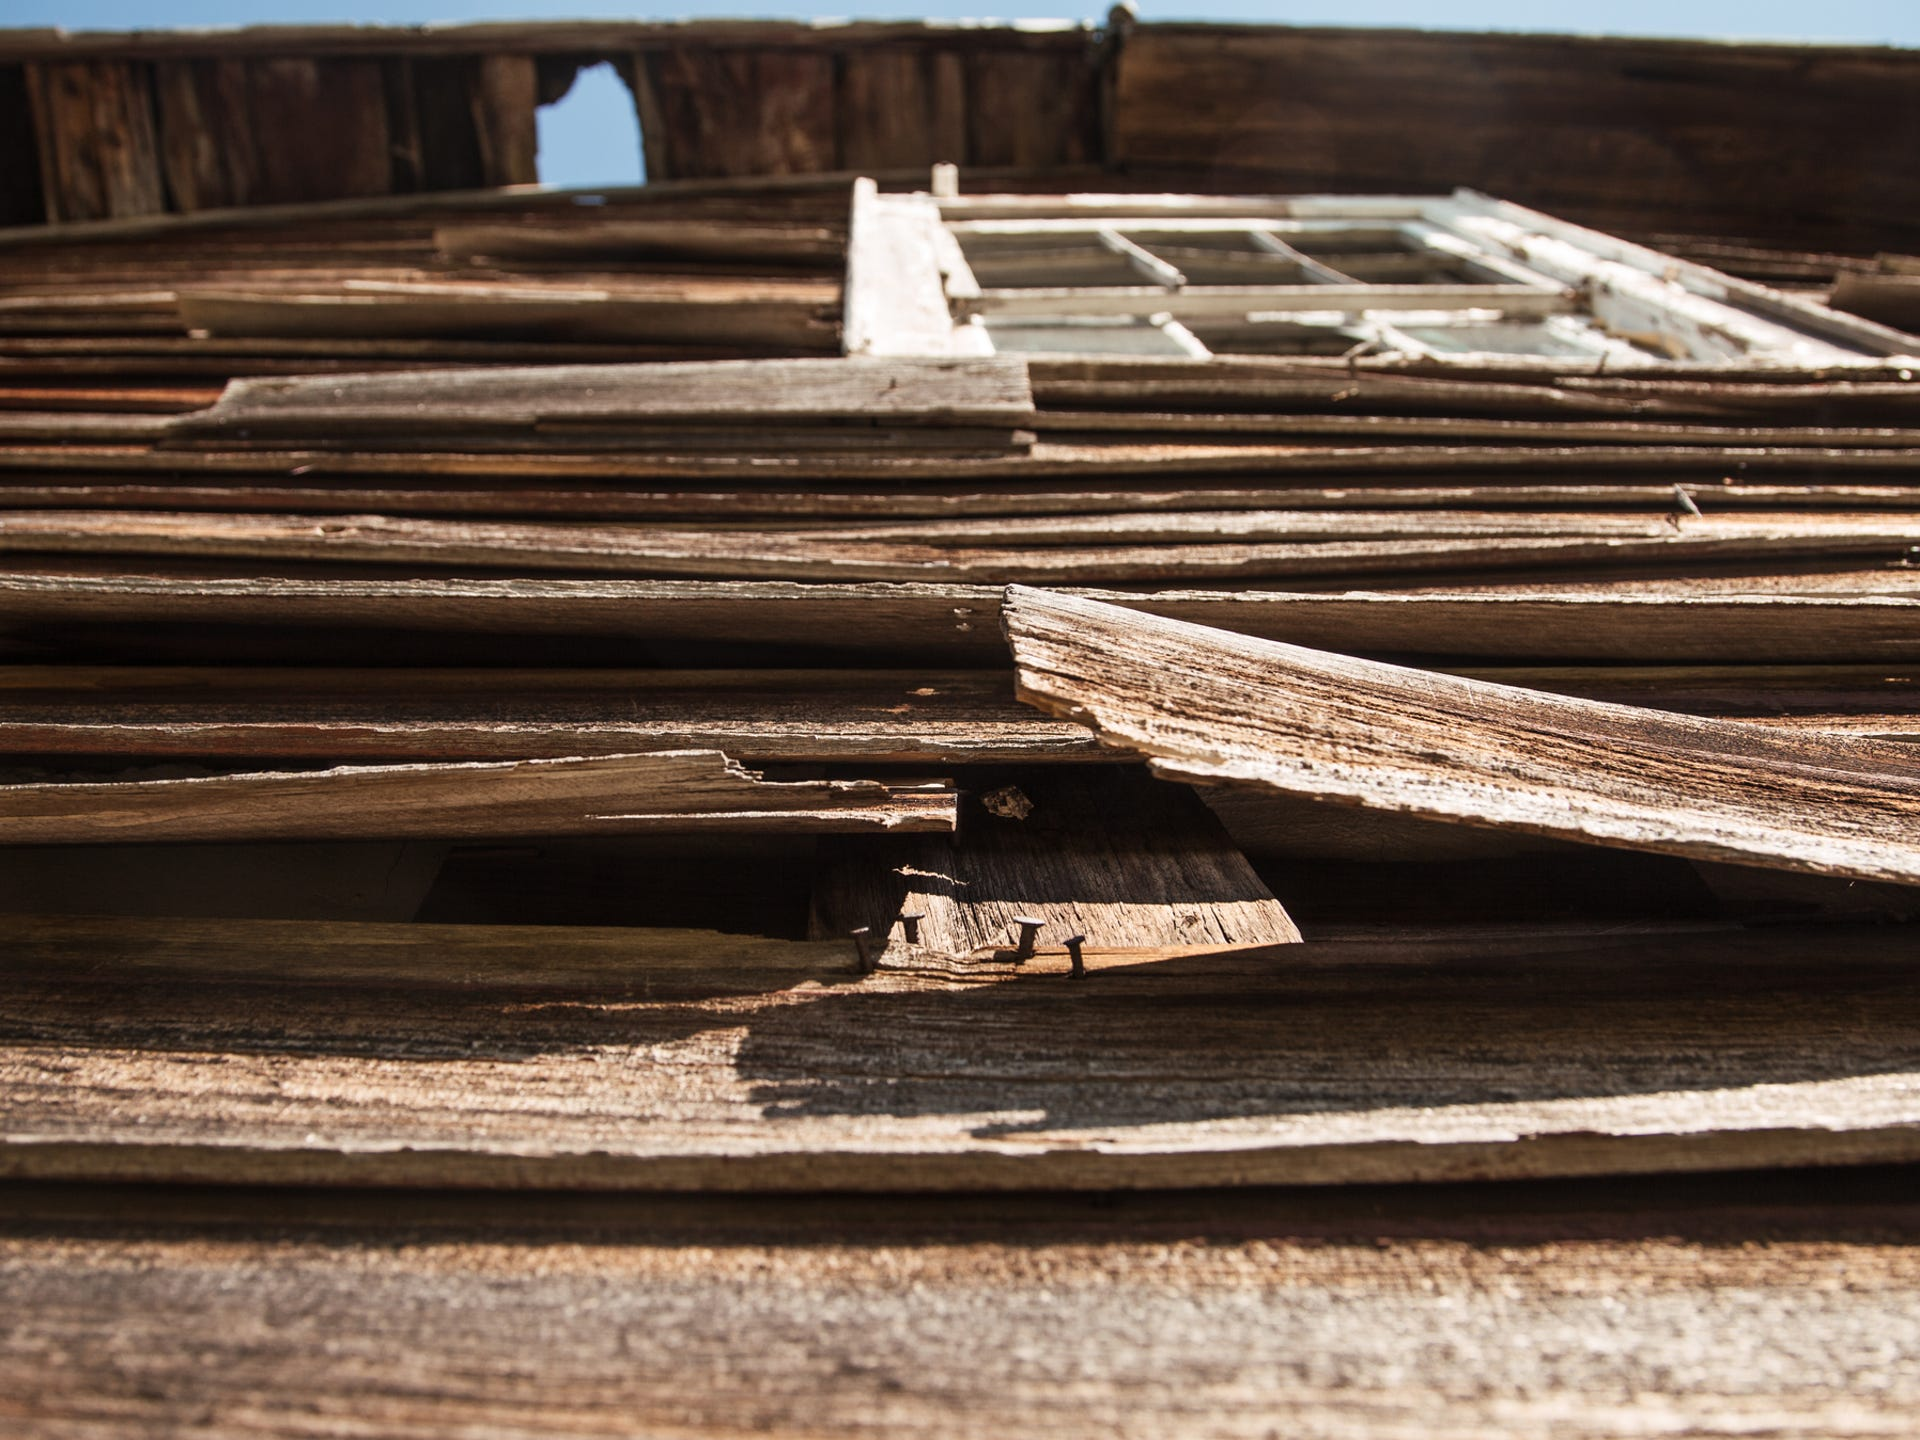 Weather-warped wood peels away from an empty house